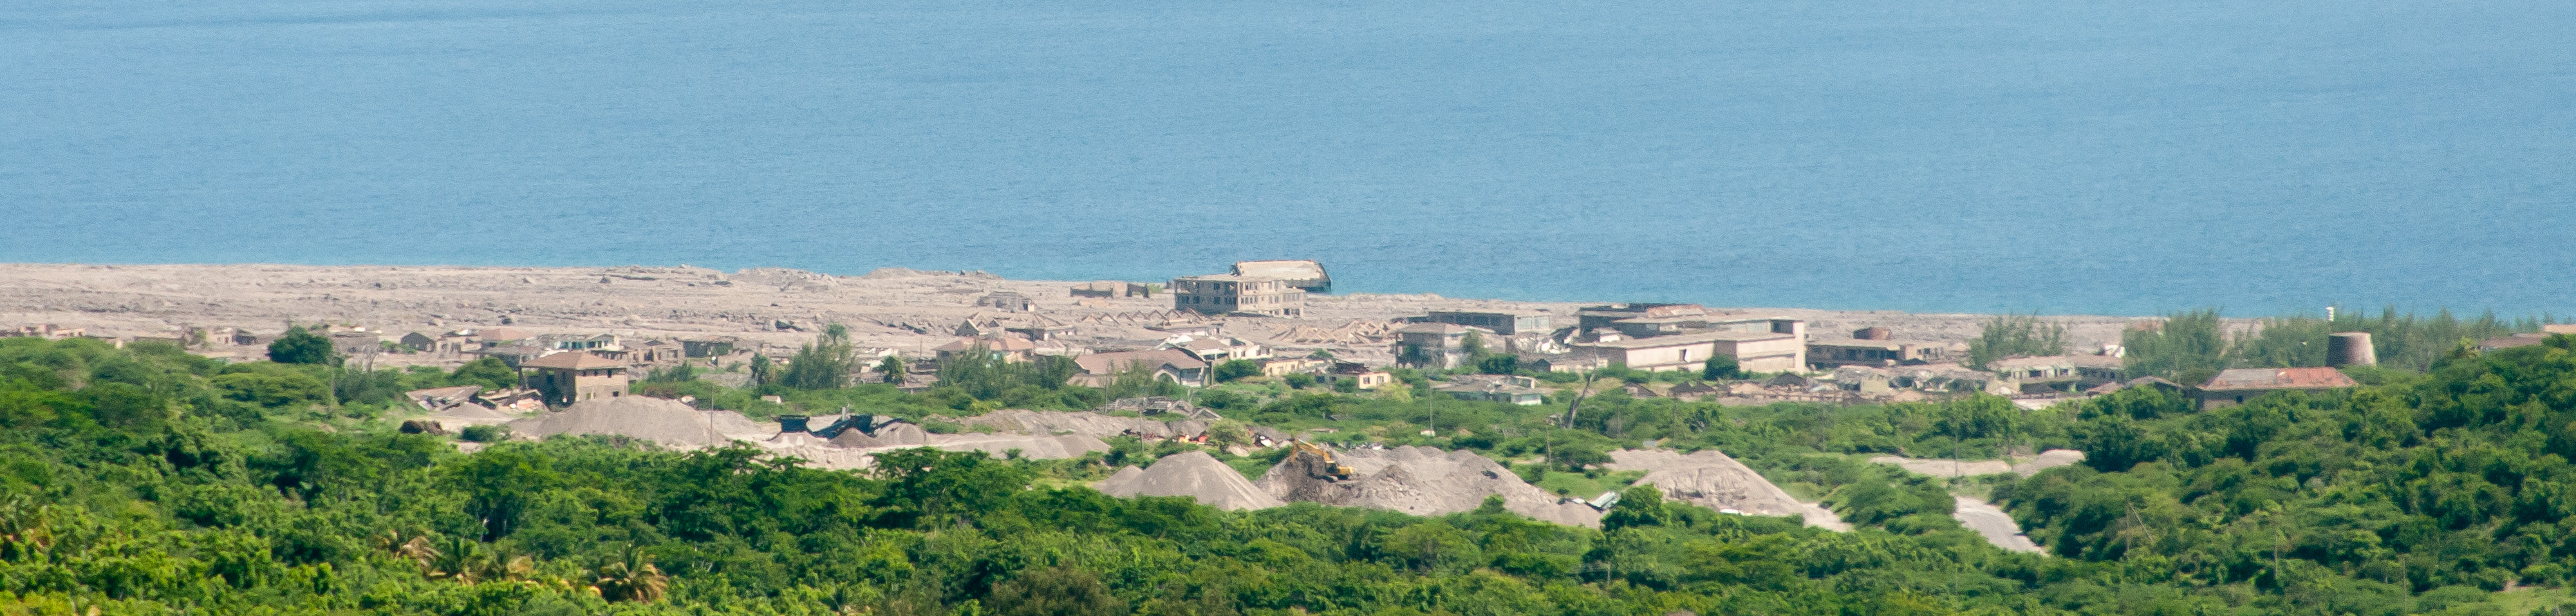 Panorama of the island of Montserrat